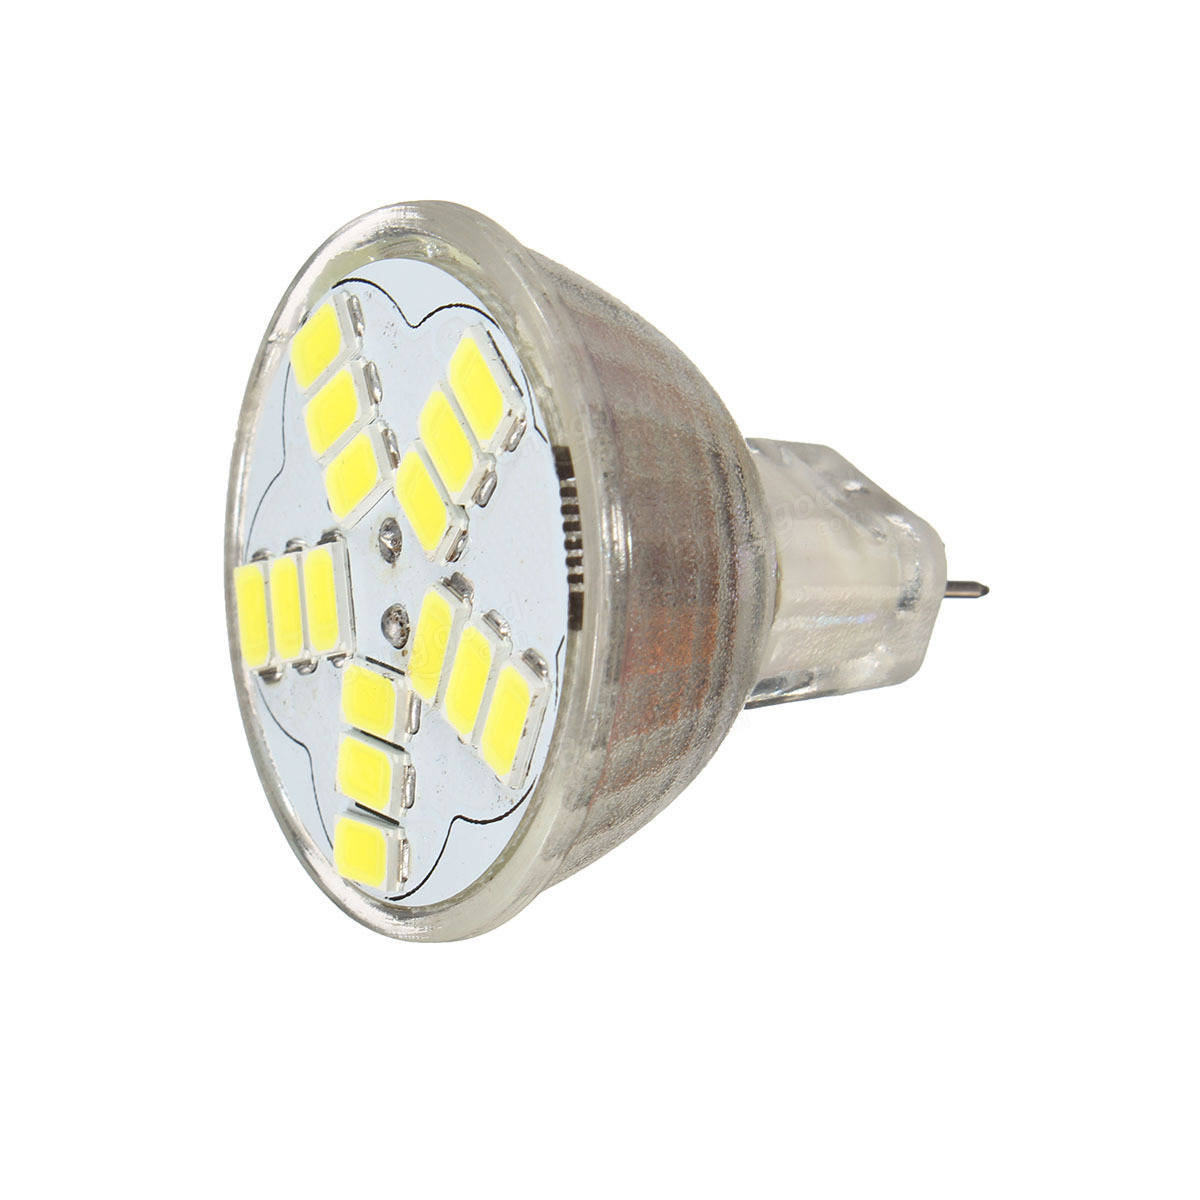 MR11 GU4 7W 600LM LED Bulb Lamp 15 5630 SMD Warm White Pure White For Ceiling Lights AC 12V